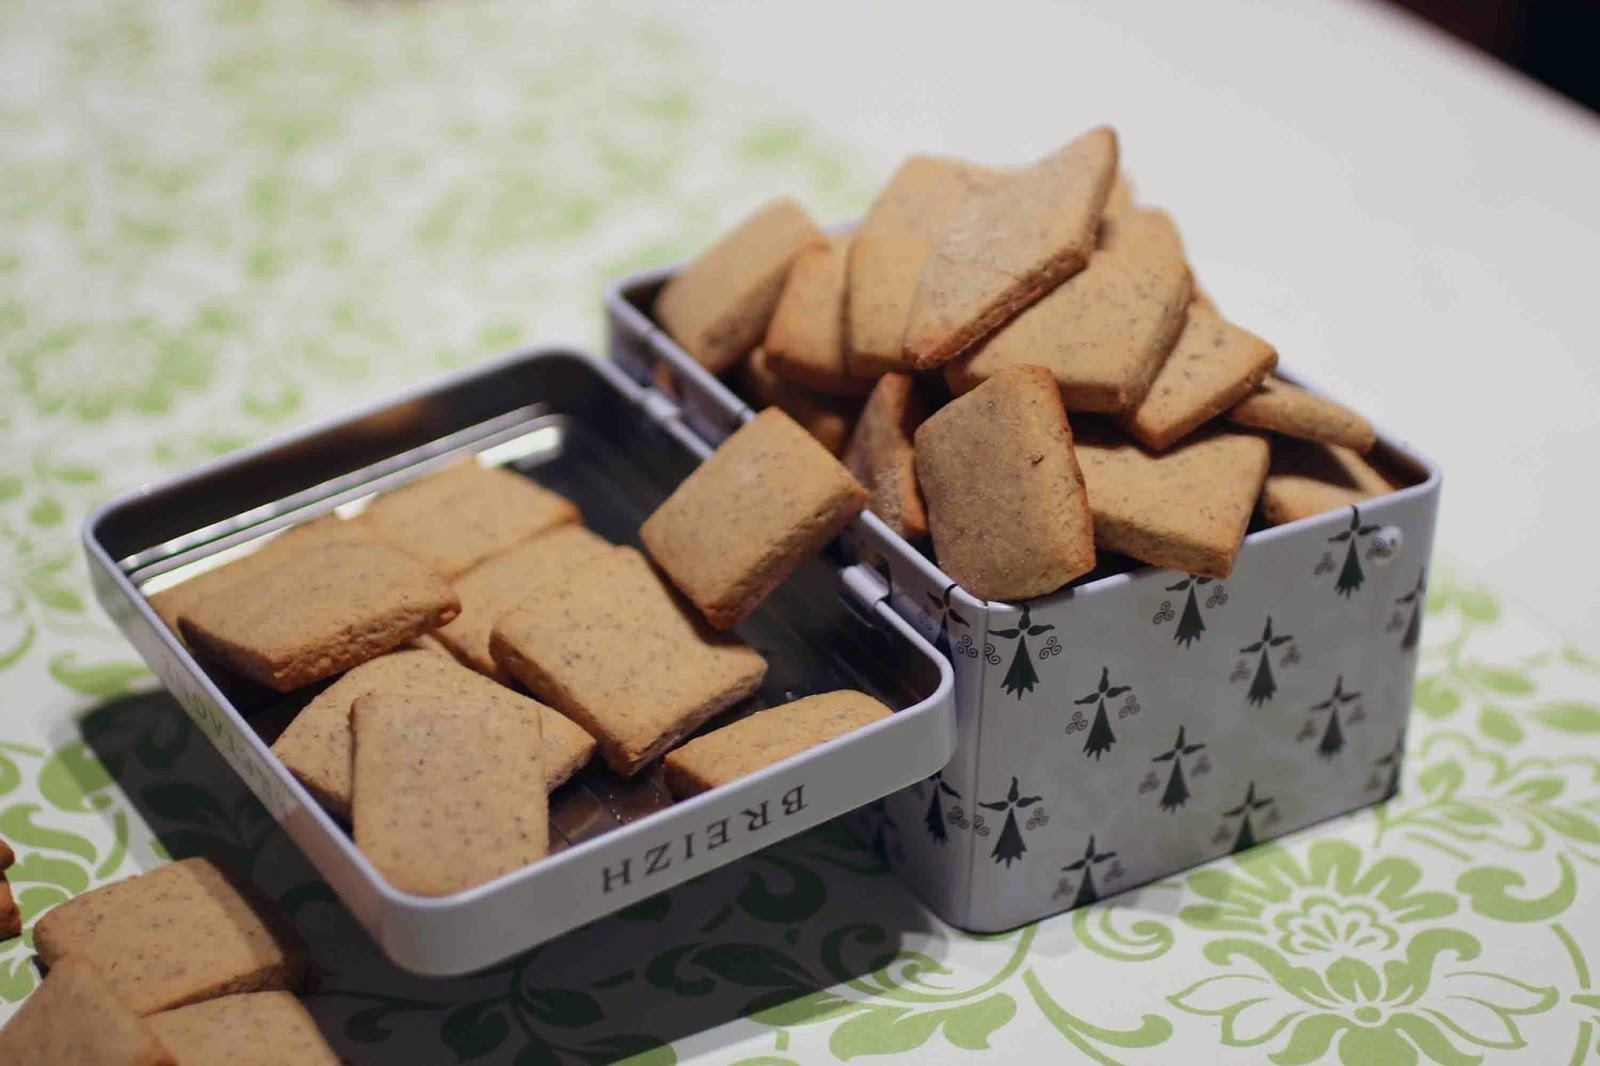 http://camilleenchocolat.blogspot.fr/2014/12/petits-biscuits-corses.html